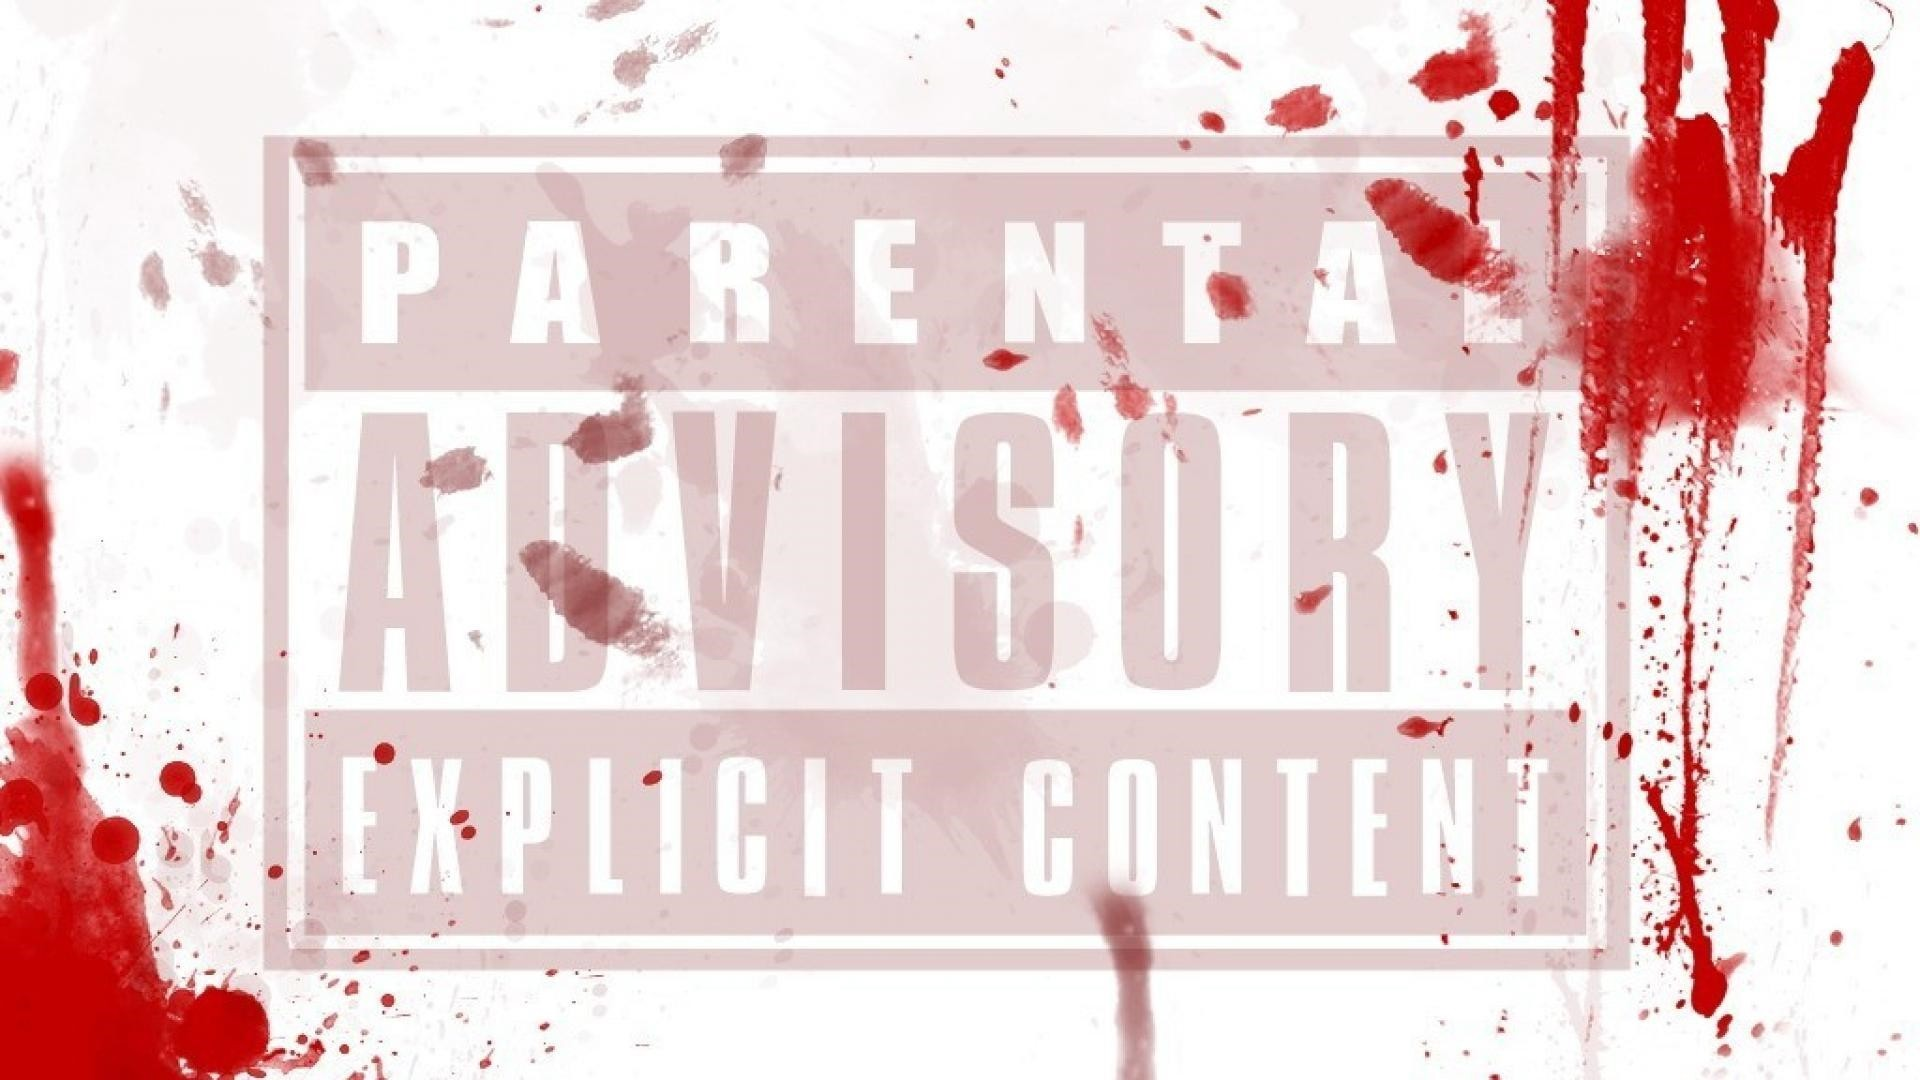 Parental Advisory Download Wallpaper